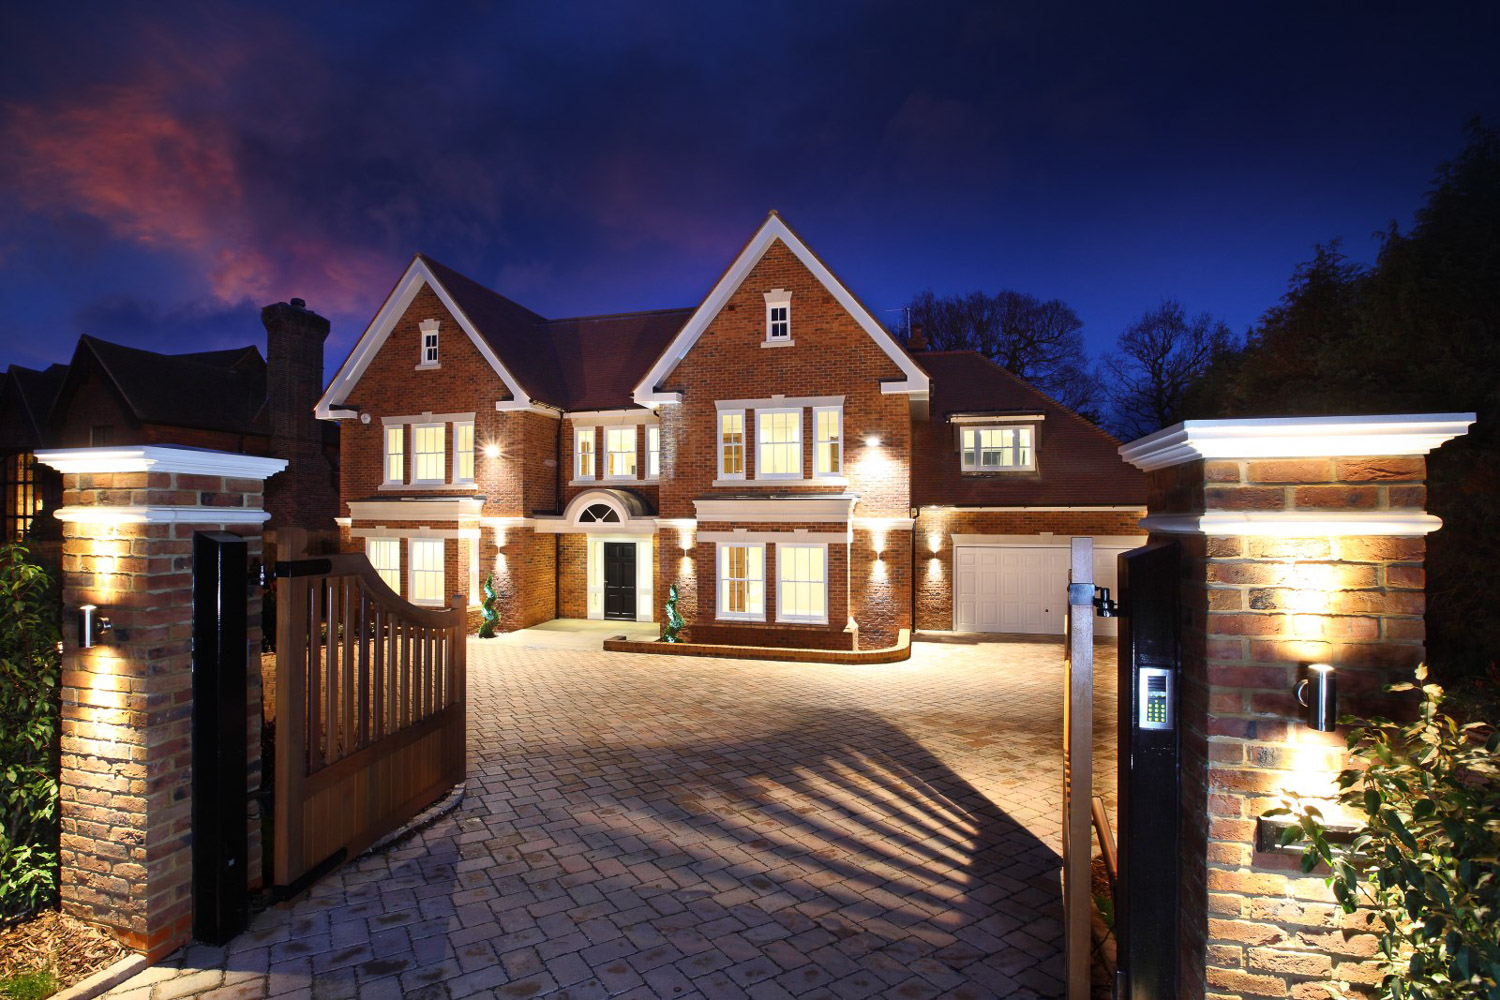 Luxury house in Esher Surrey. Luxury homes Surrey, new homes Esher.